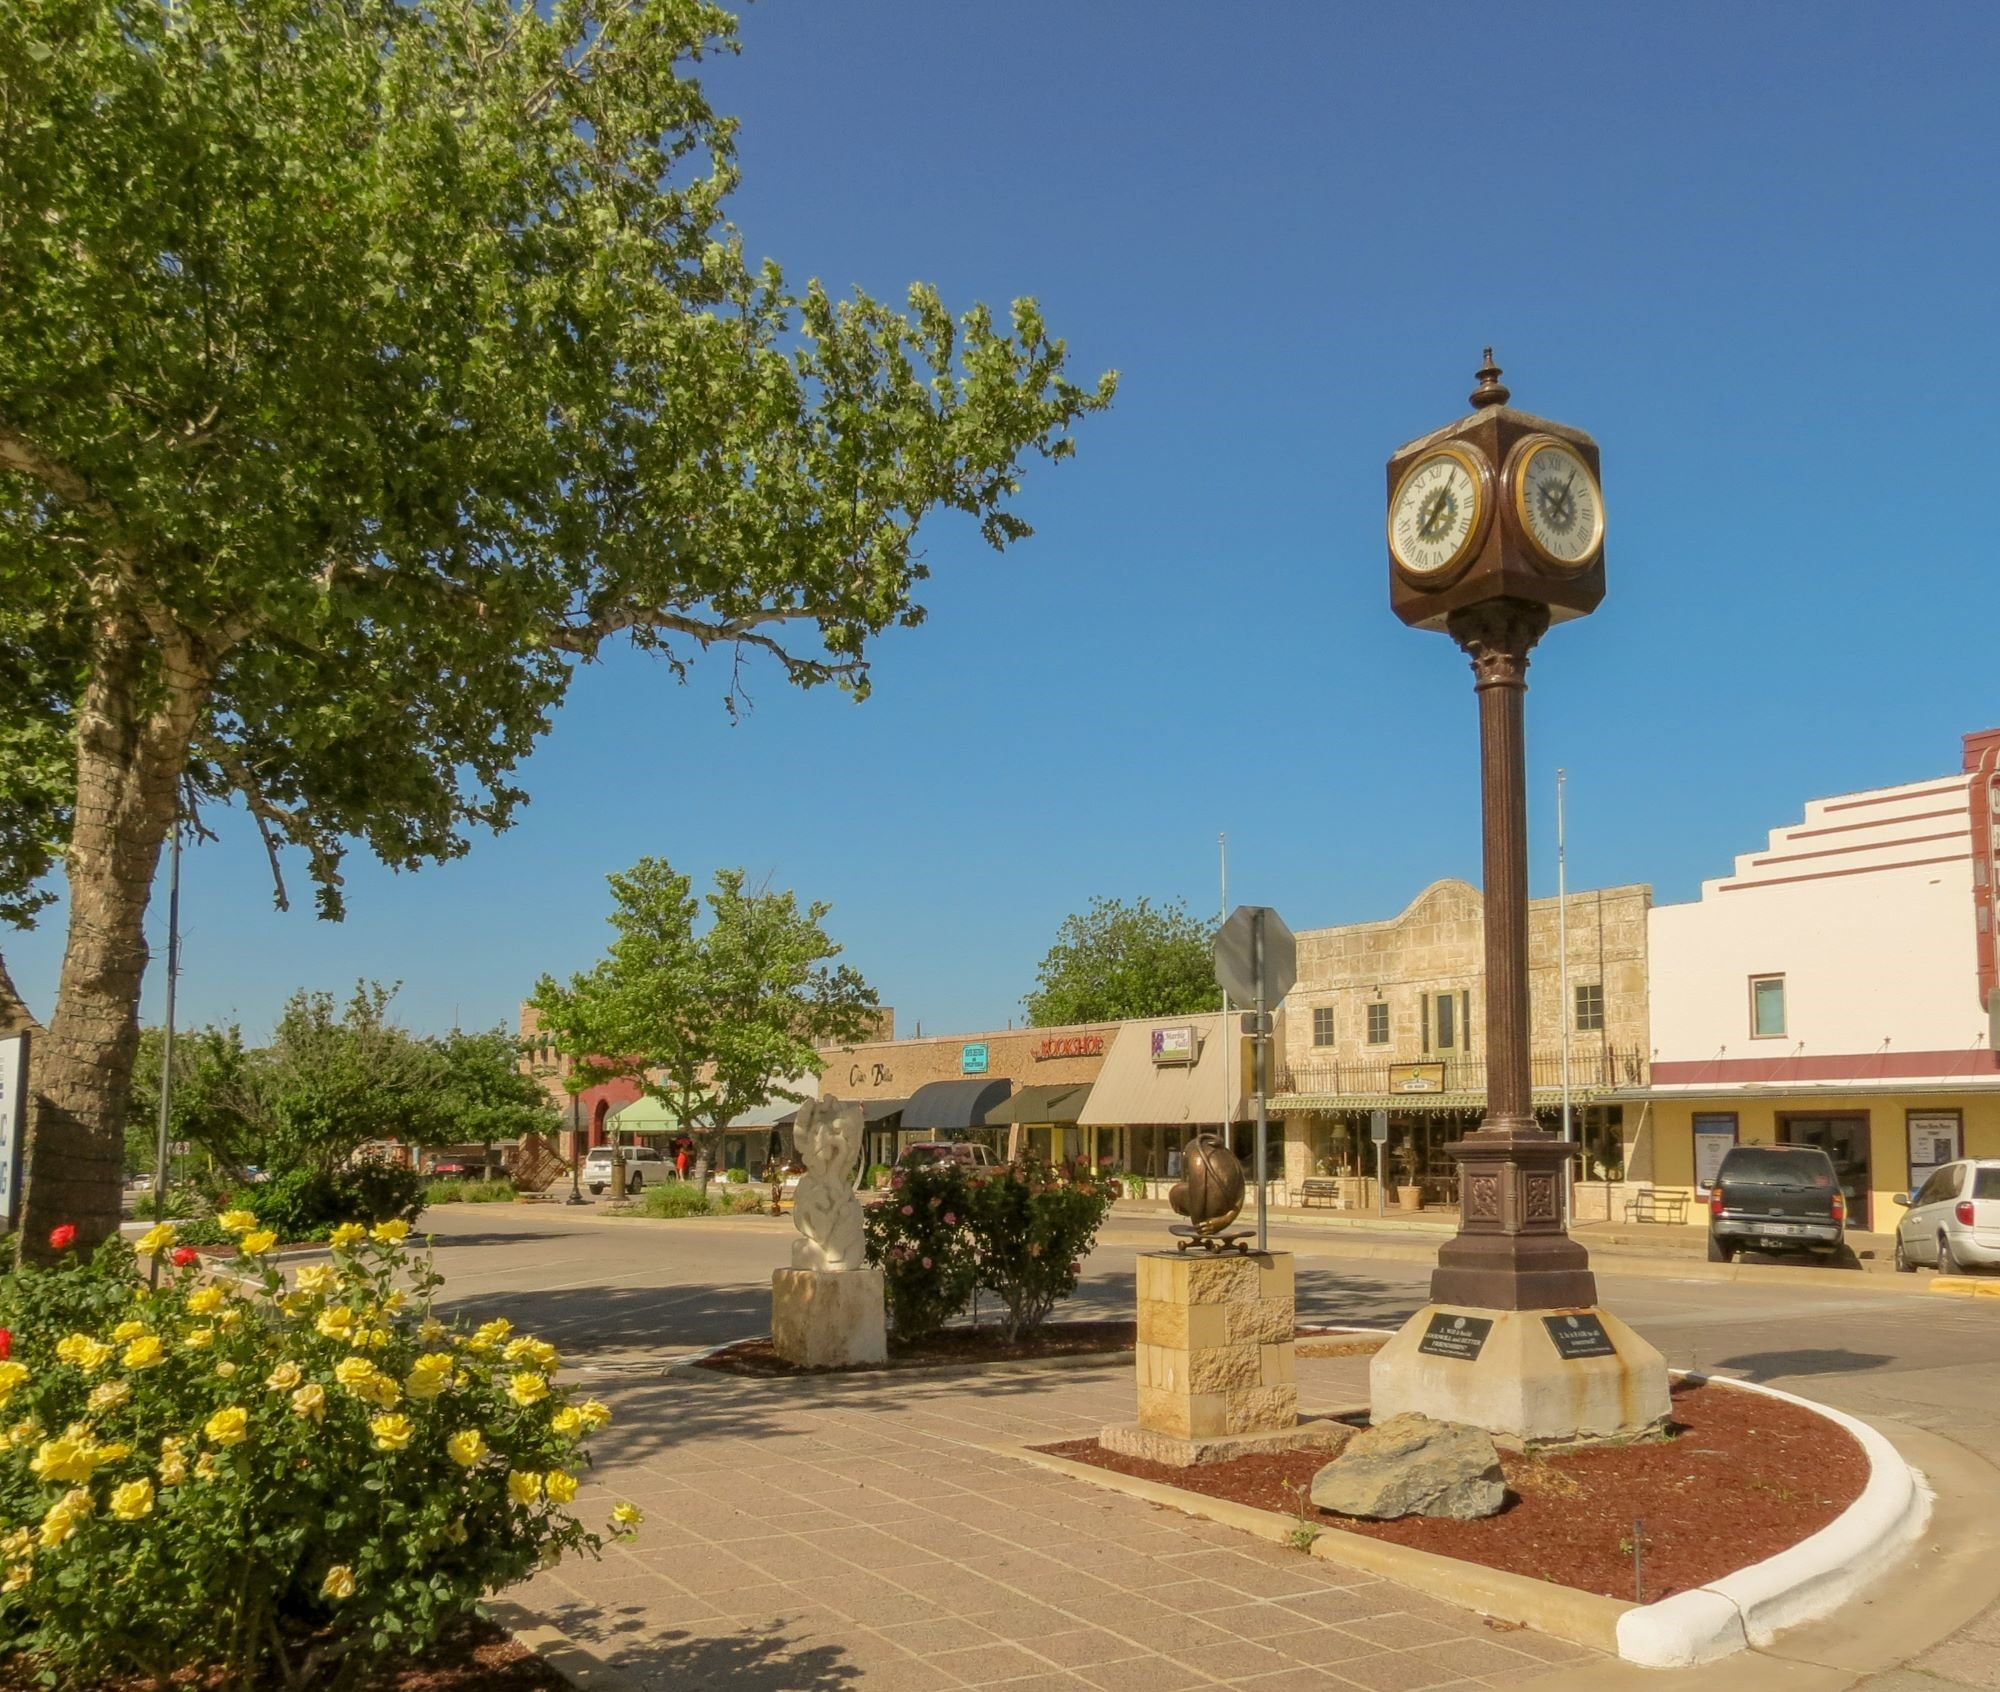 Filming in Marble Falls | Marble Falls, TX - Official Website